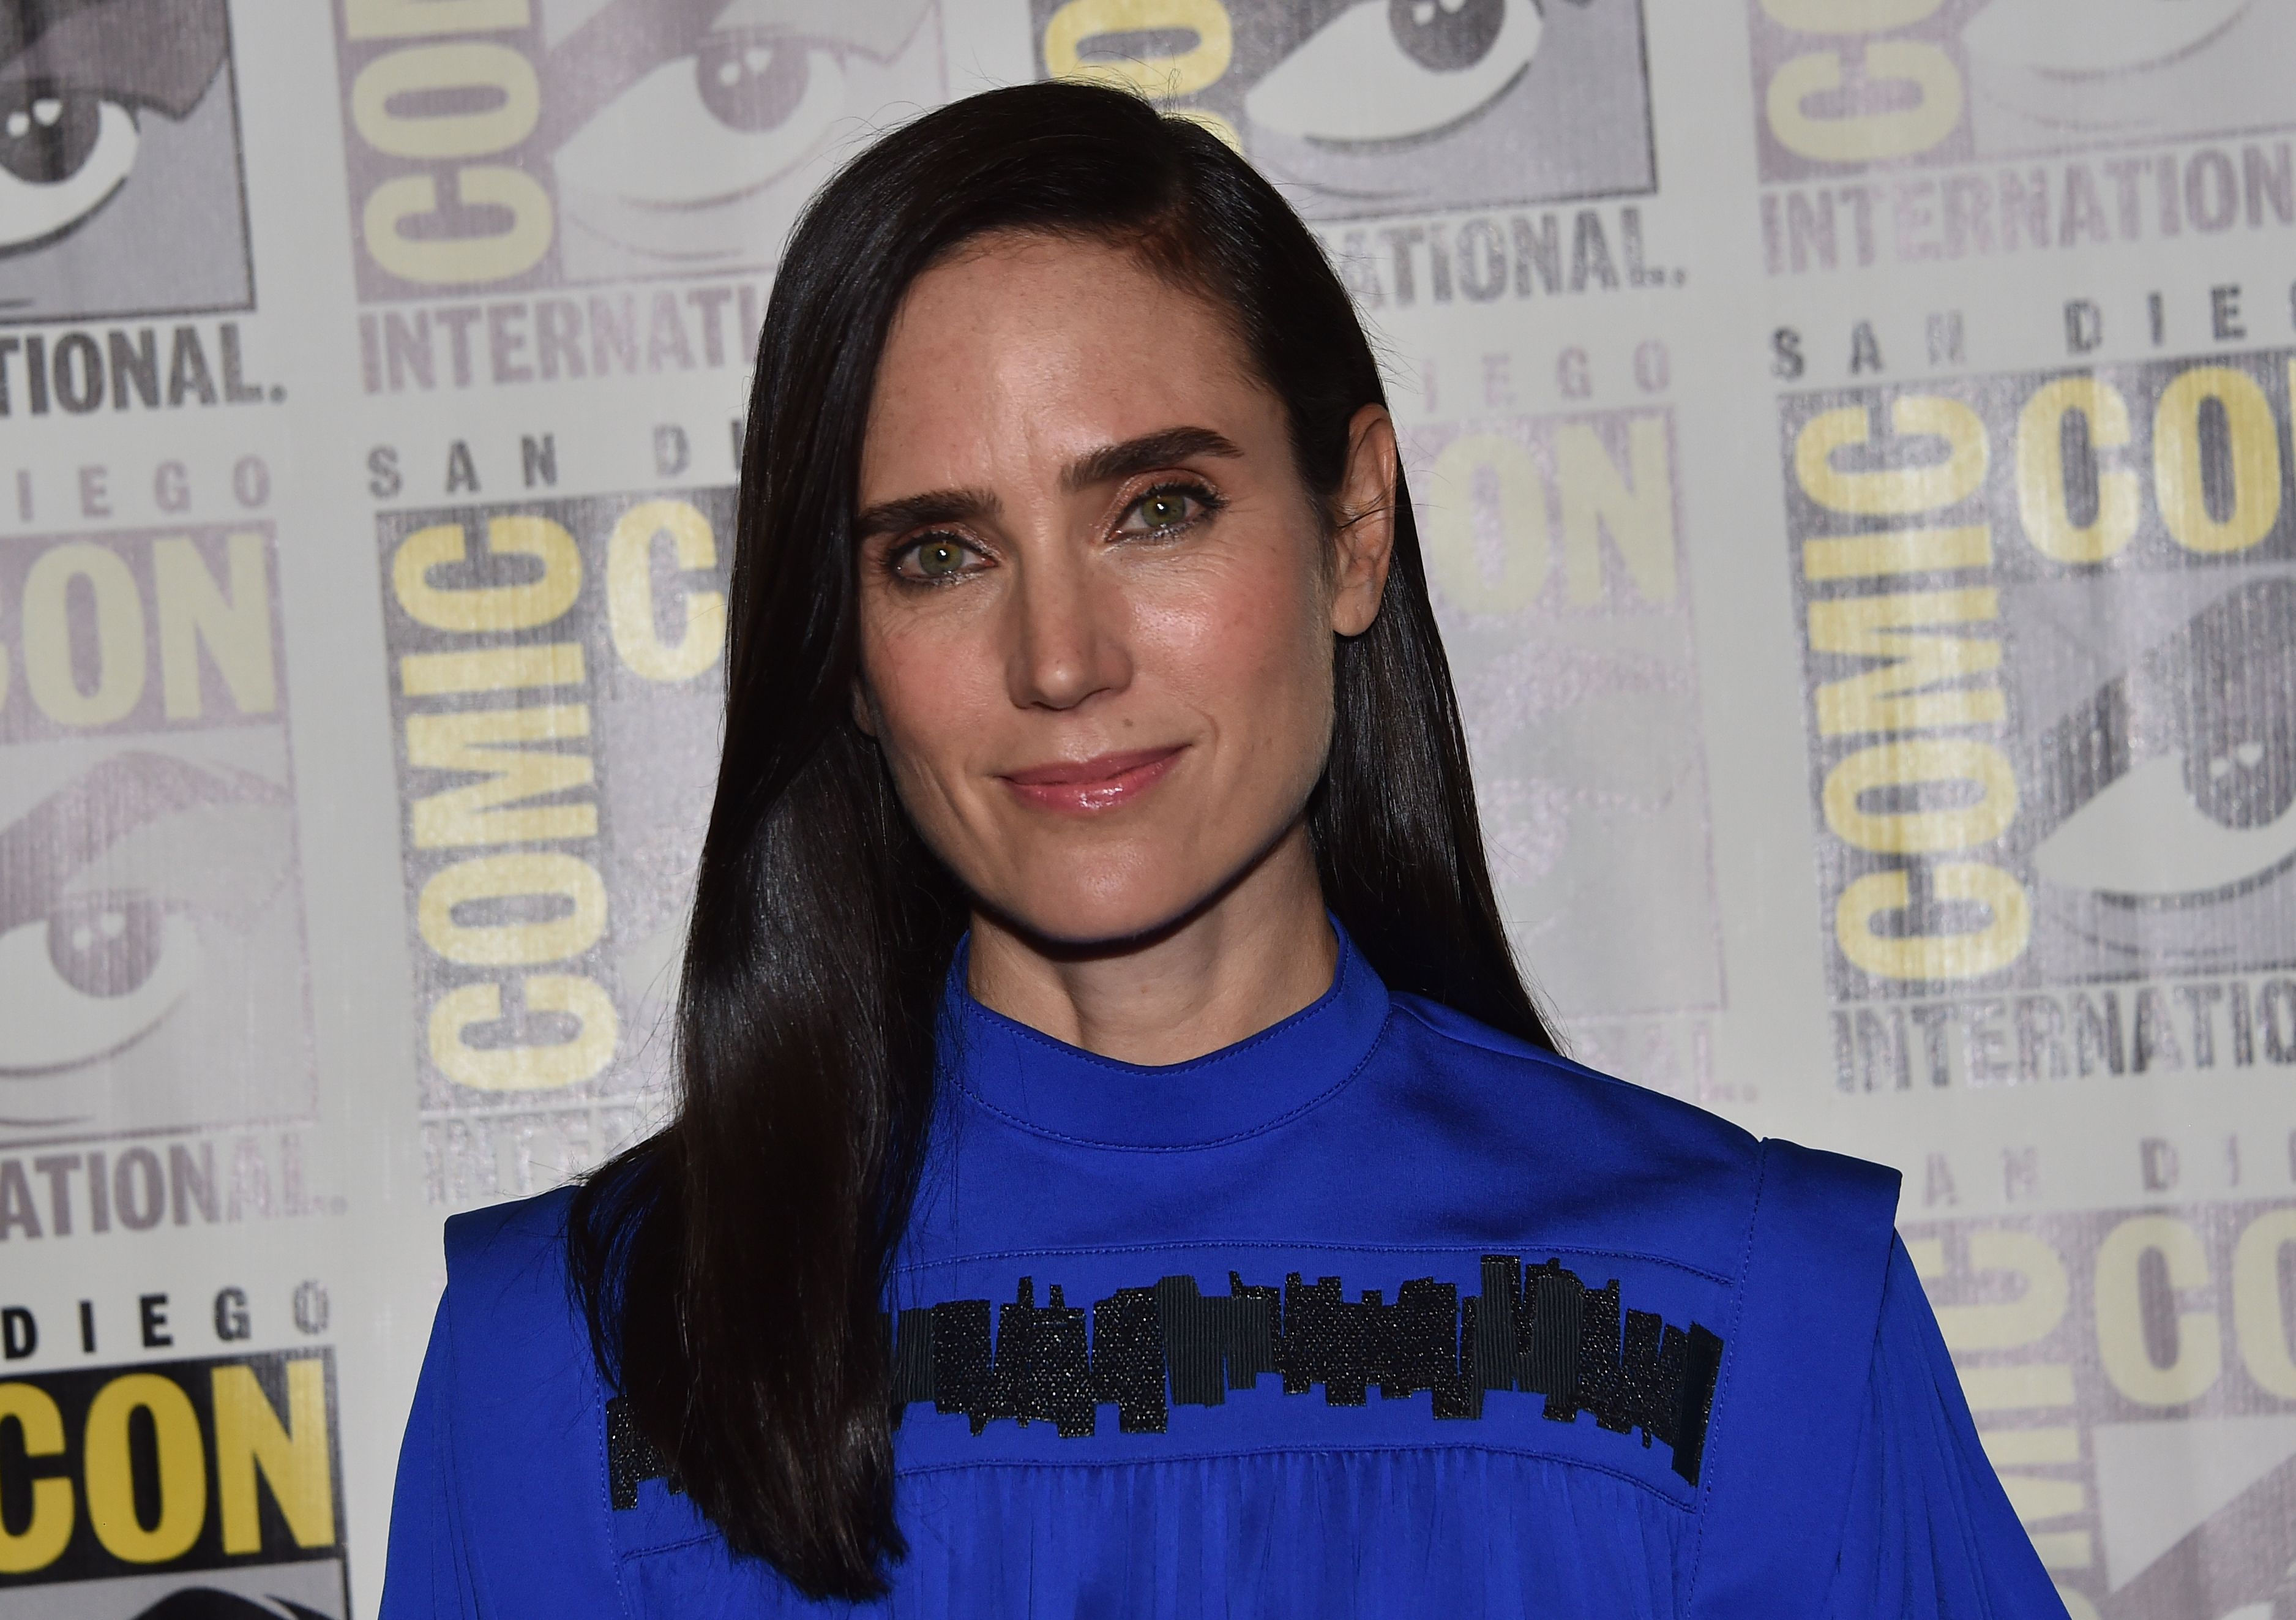 Jennifer Connelly at an event for Snowpiercer (2020)